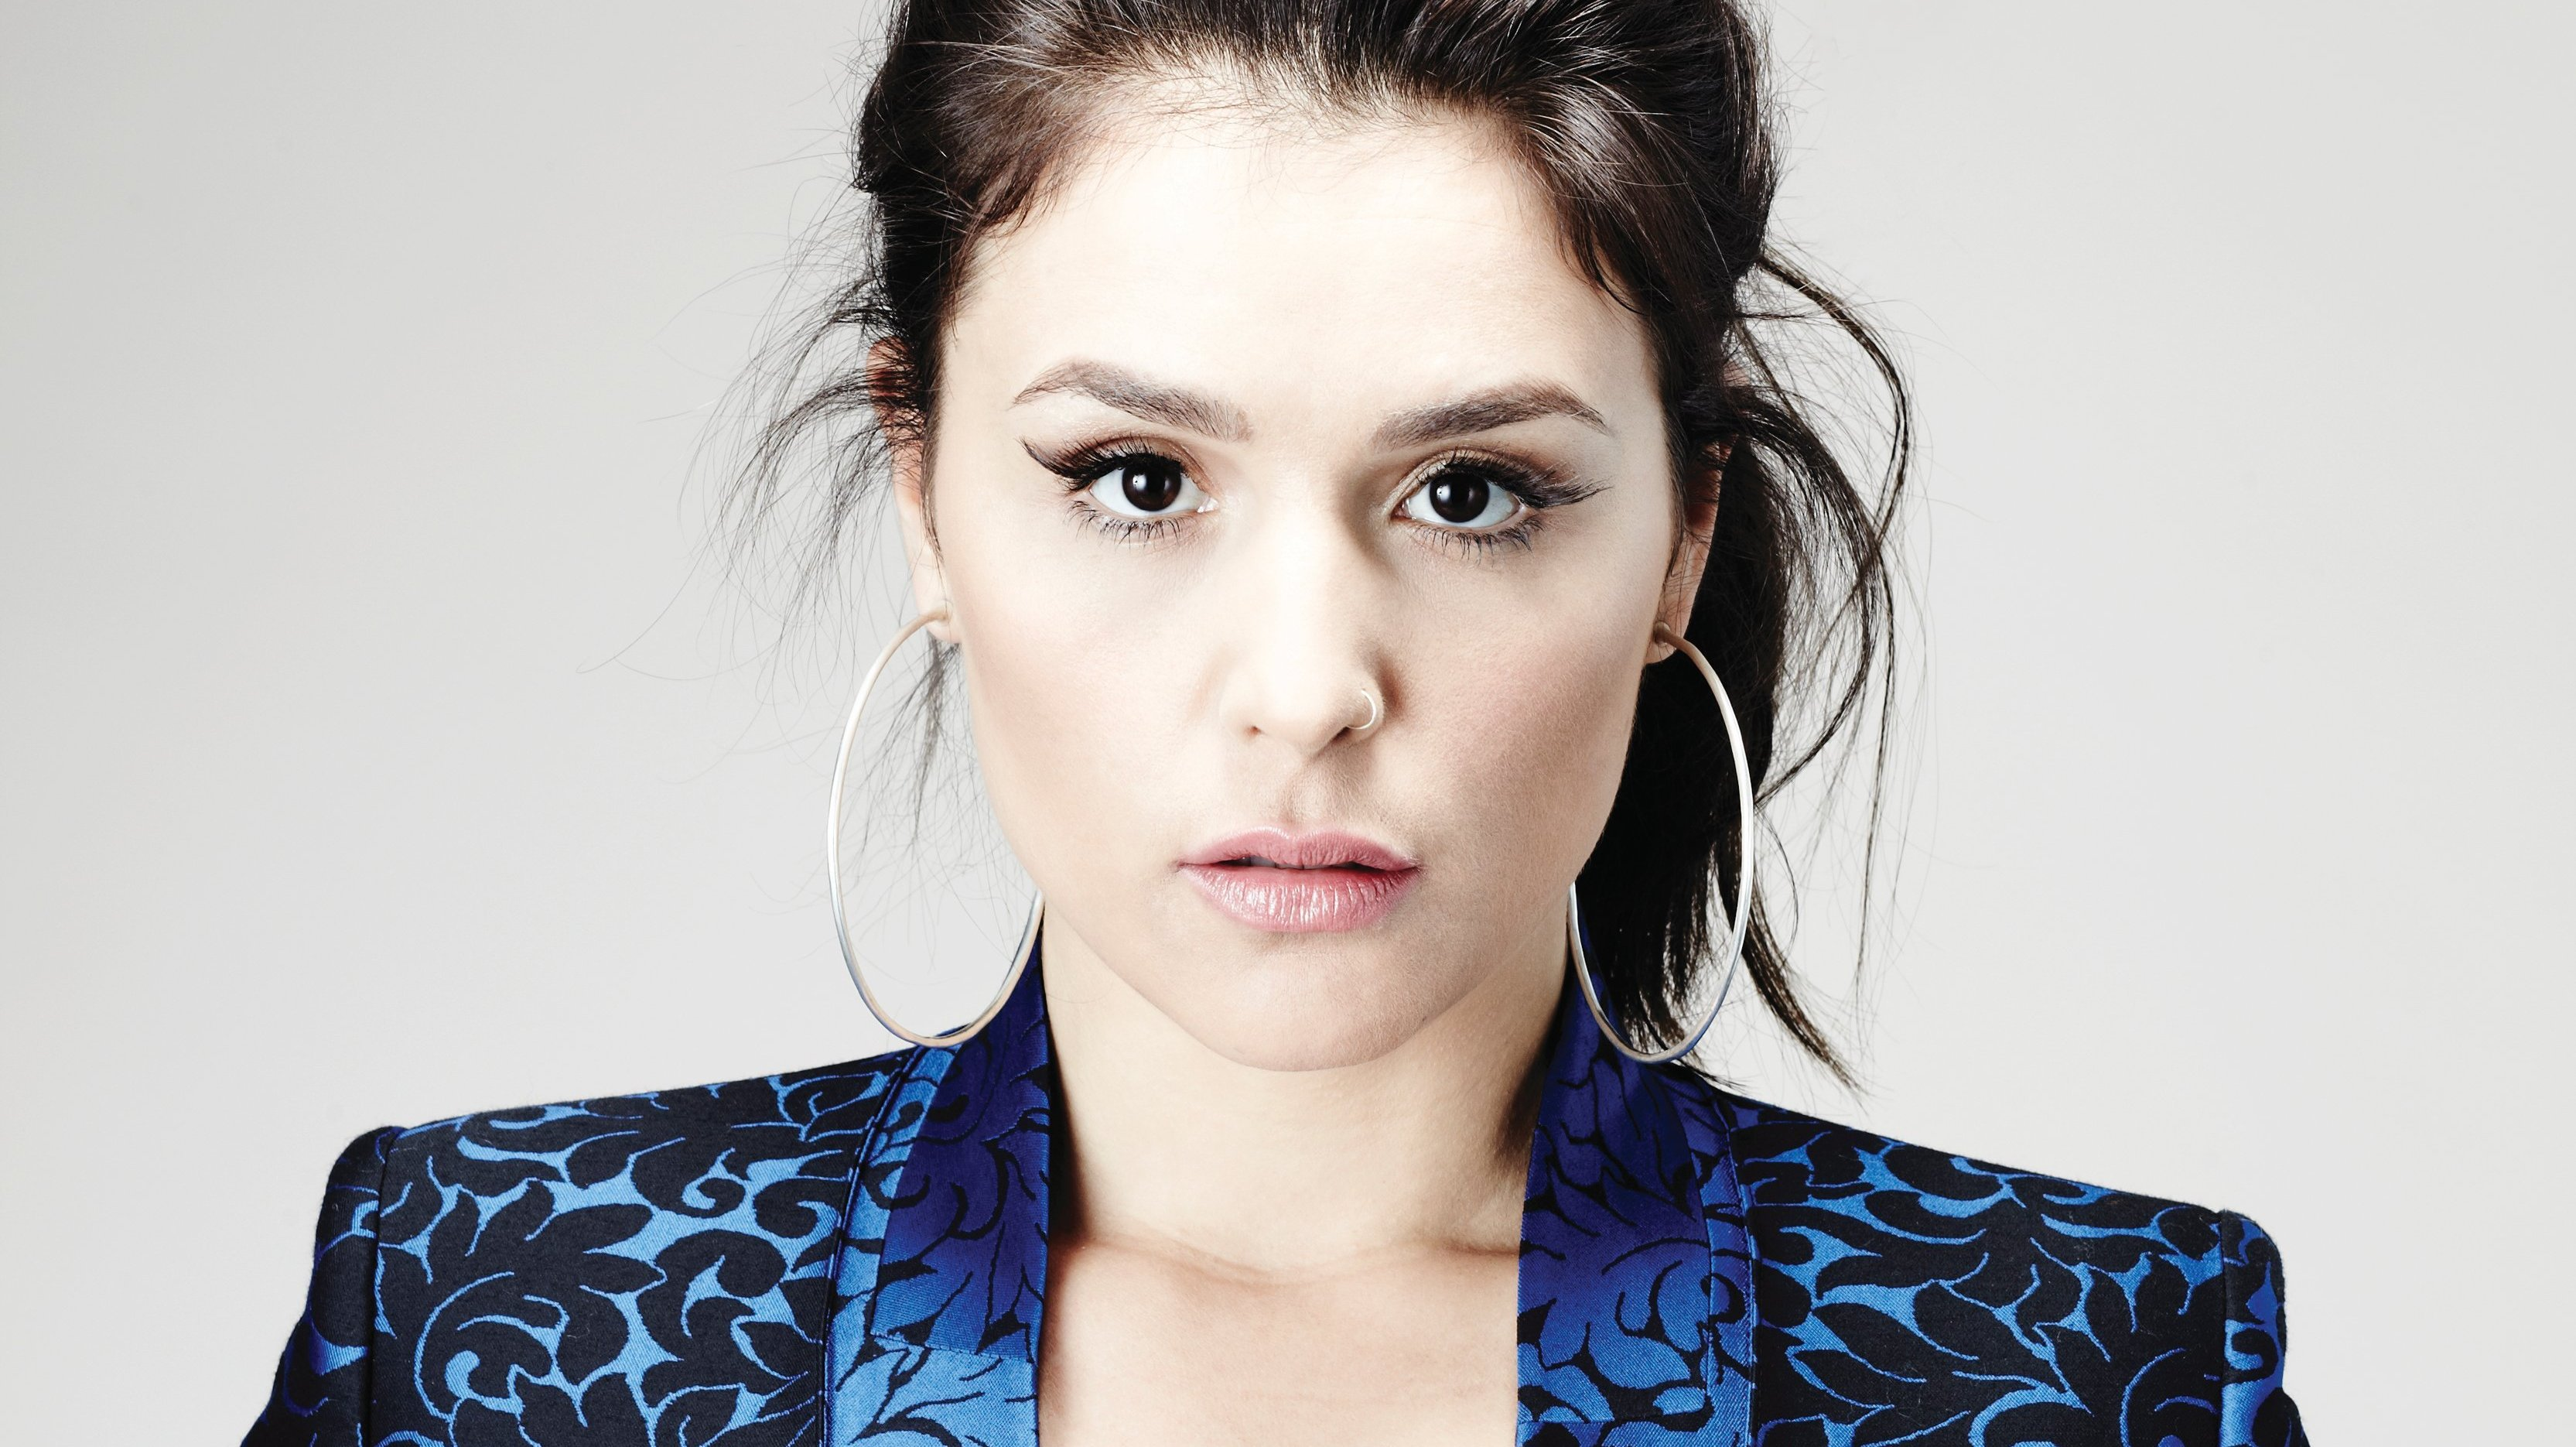 The 32-year old daughter of father John and mother Helena, 166 cm tall Jessie Ware in 2017 photo